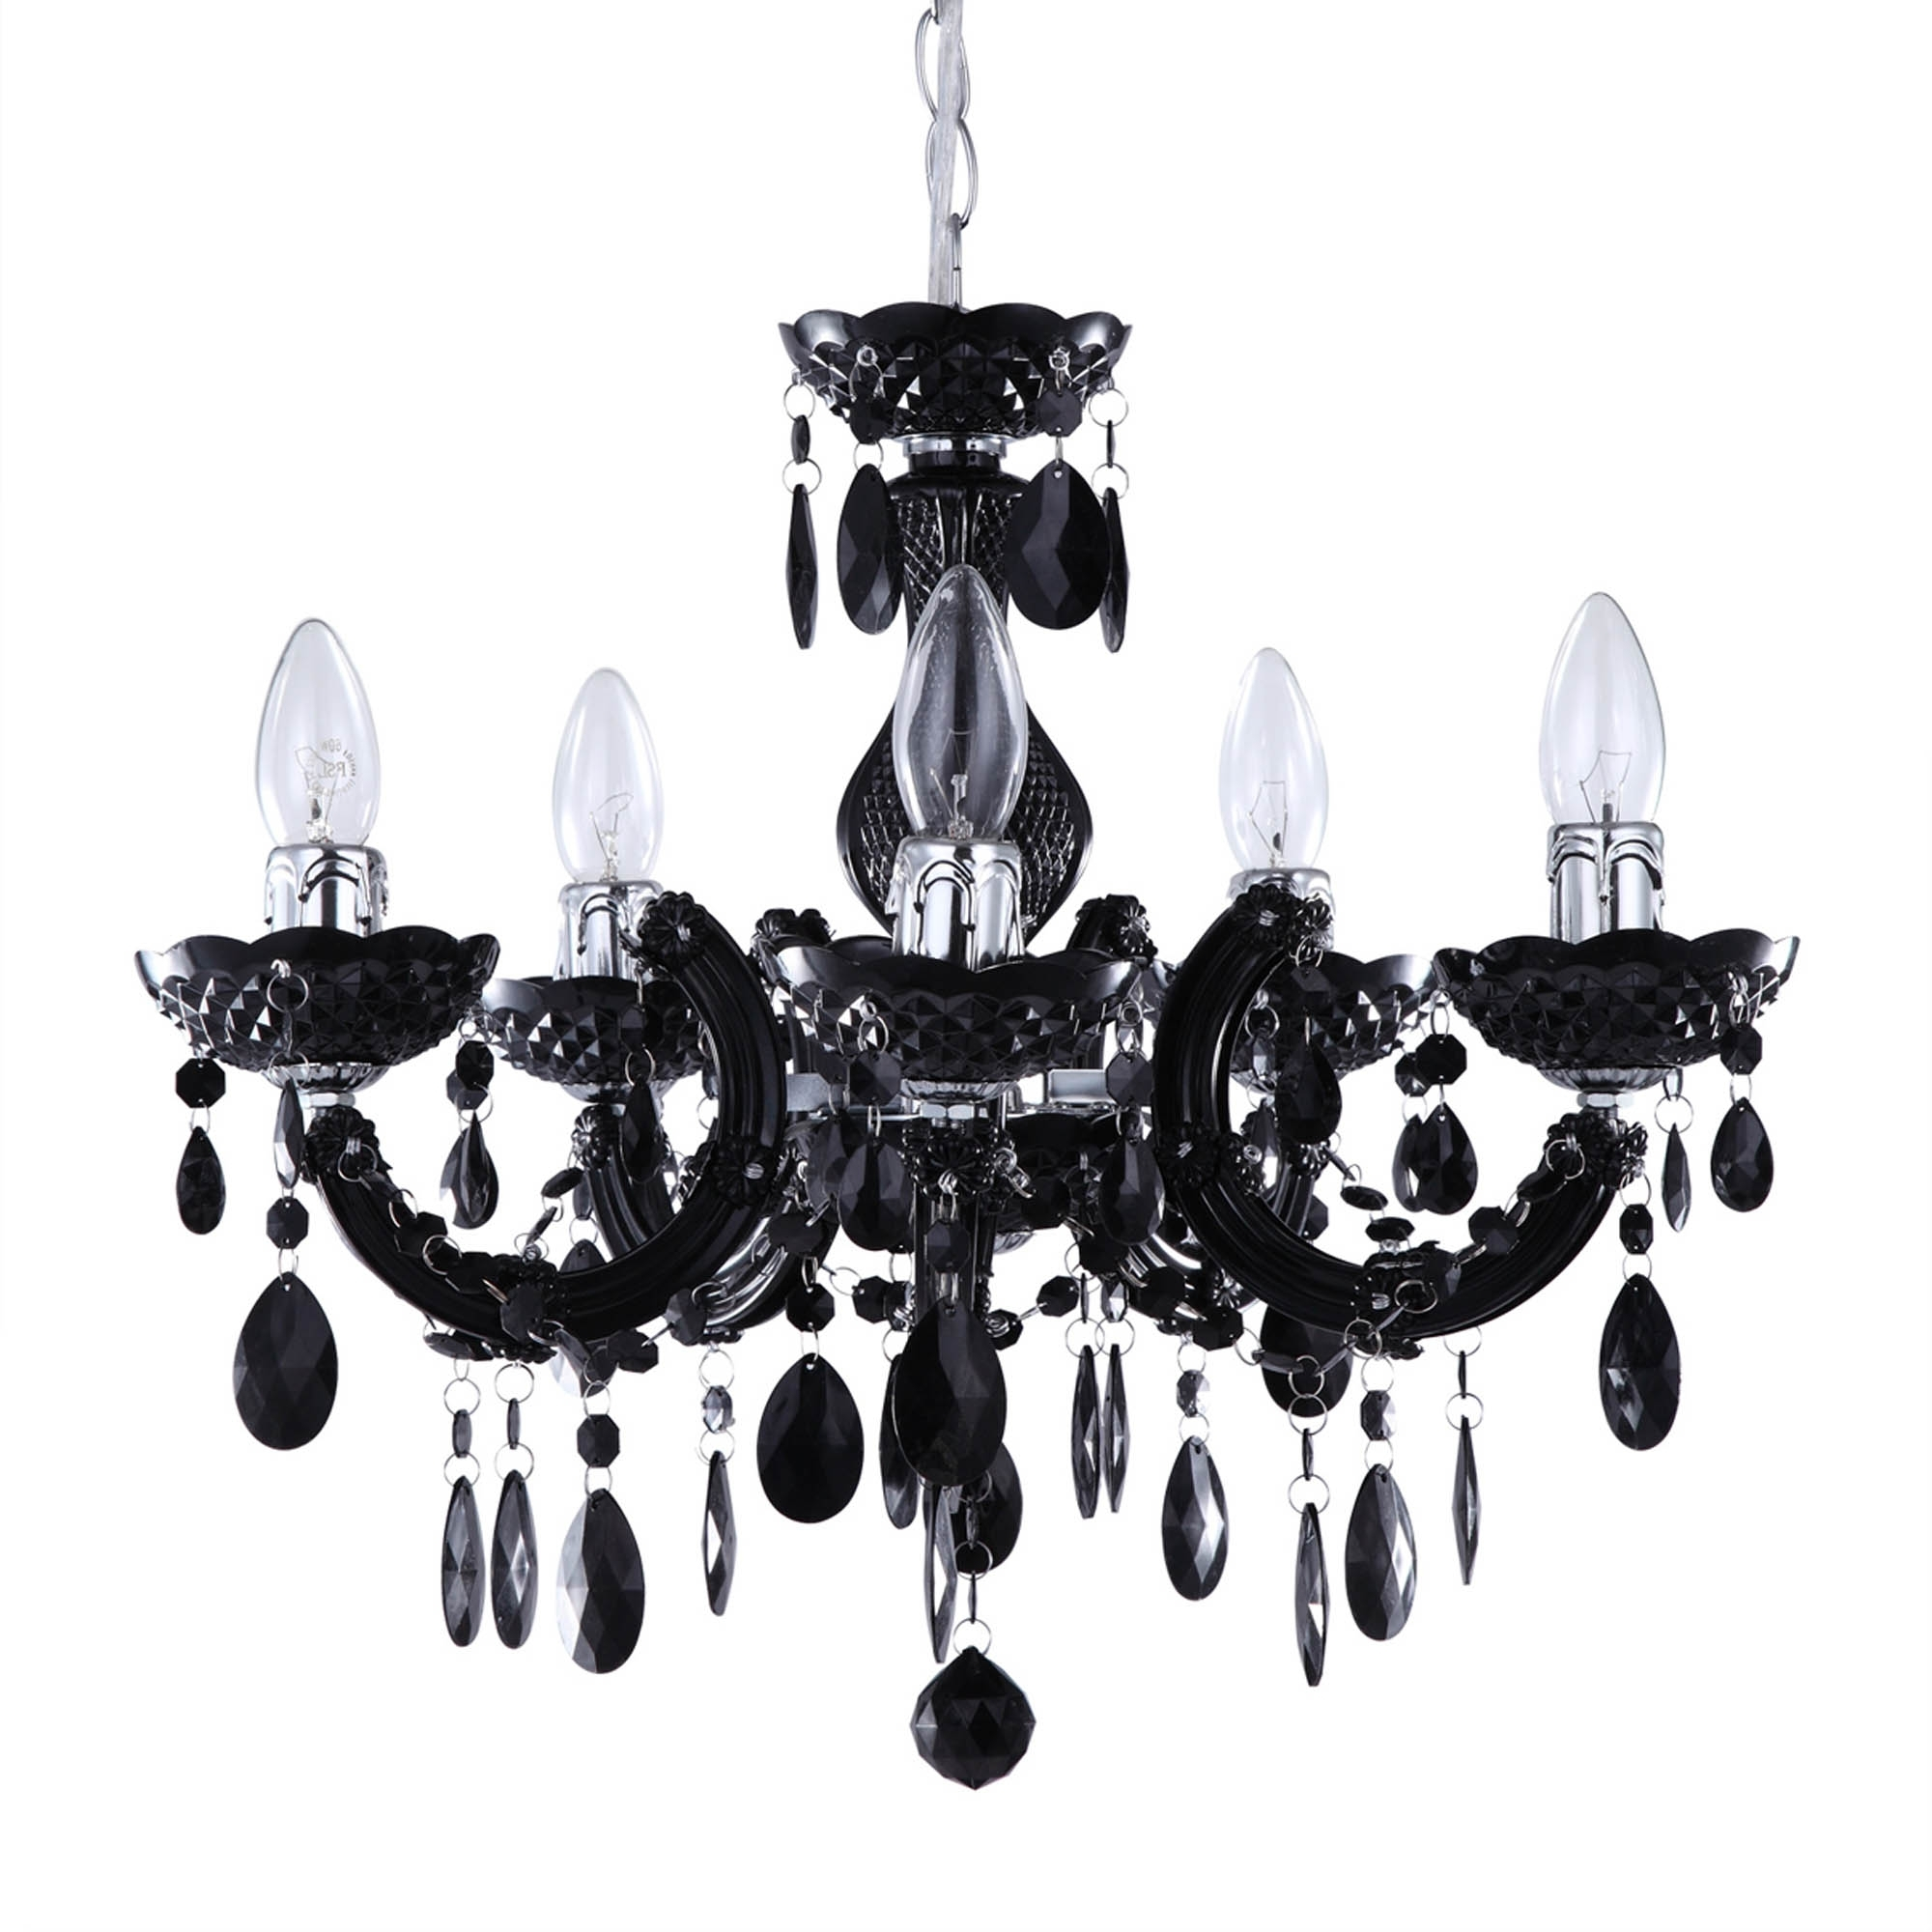 Newest Large Black Chandelier With Regard To Marie Therese Black Chandelier (View 9 of 15)